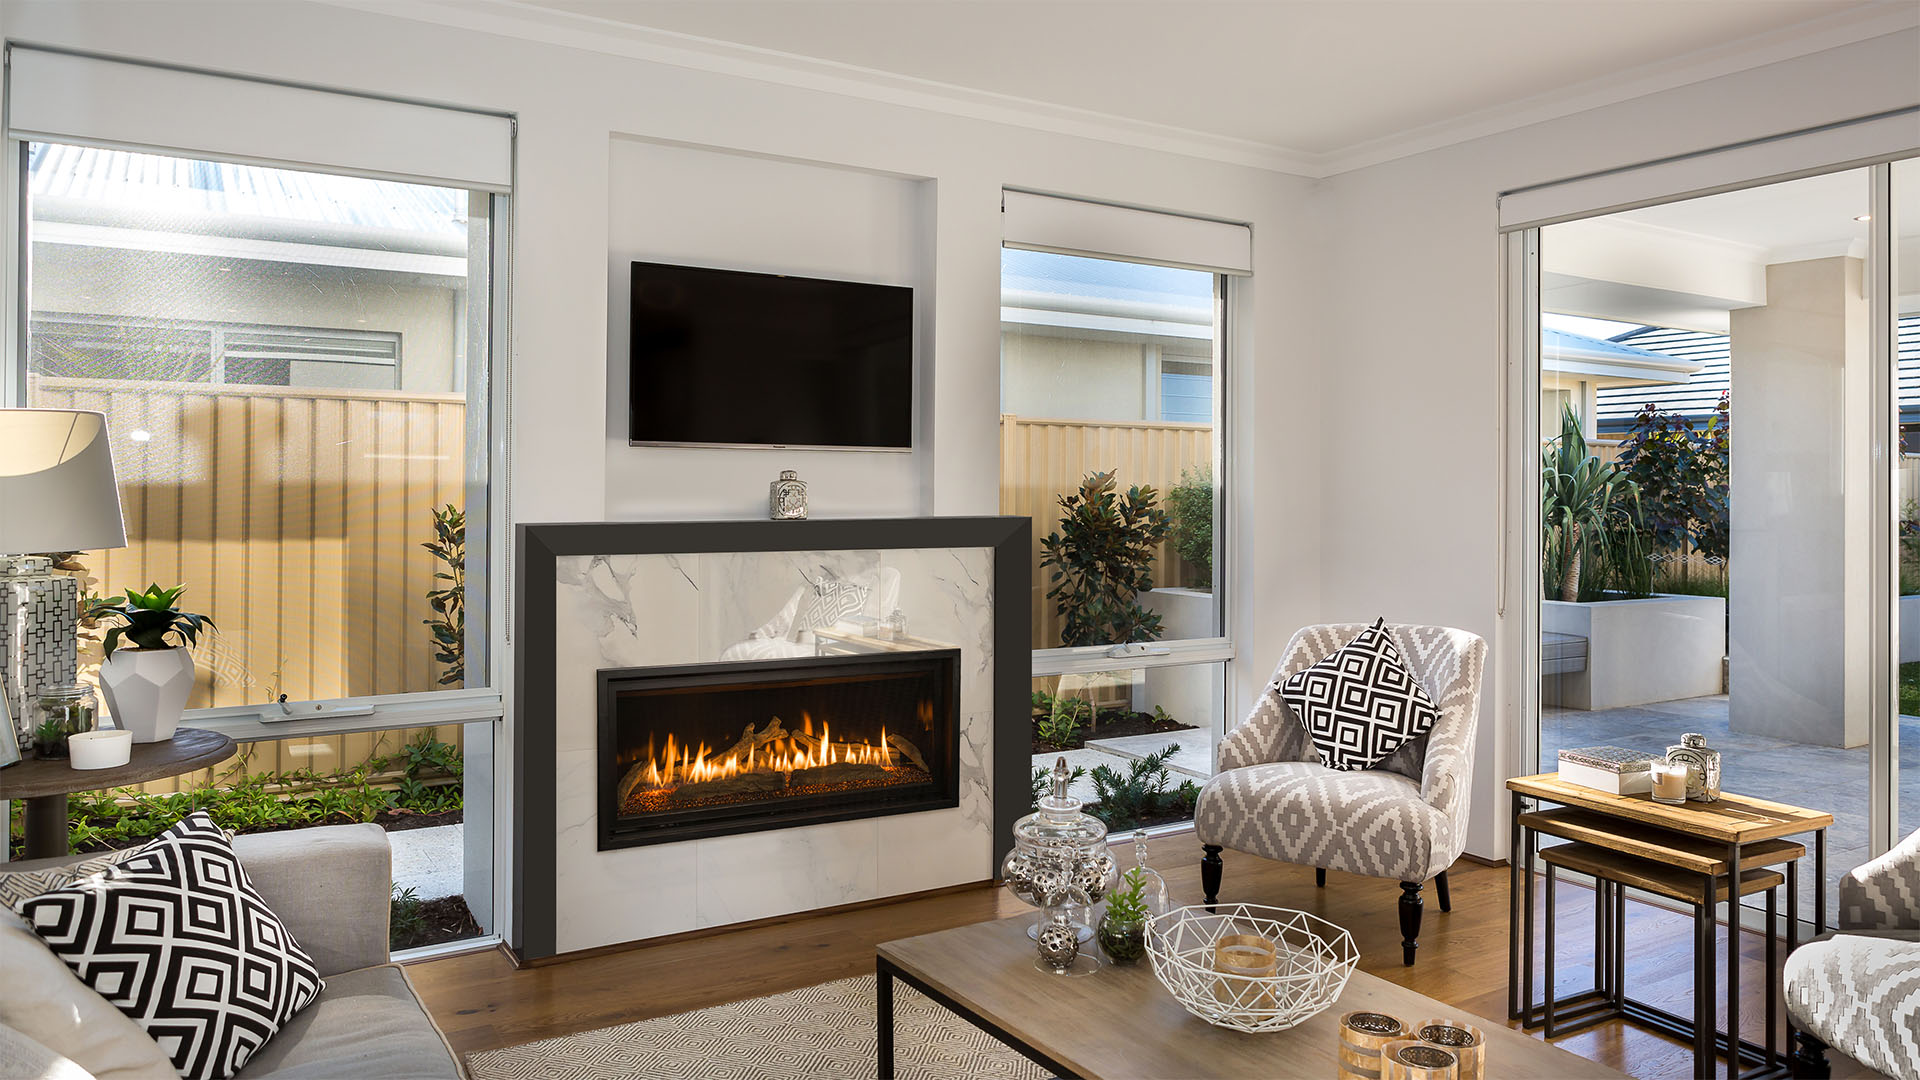 Inspiring Fmi Fireplaces | Admirable Fmi Wood Burning Fireplace